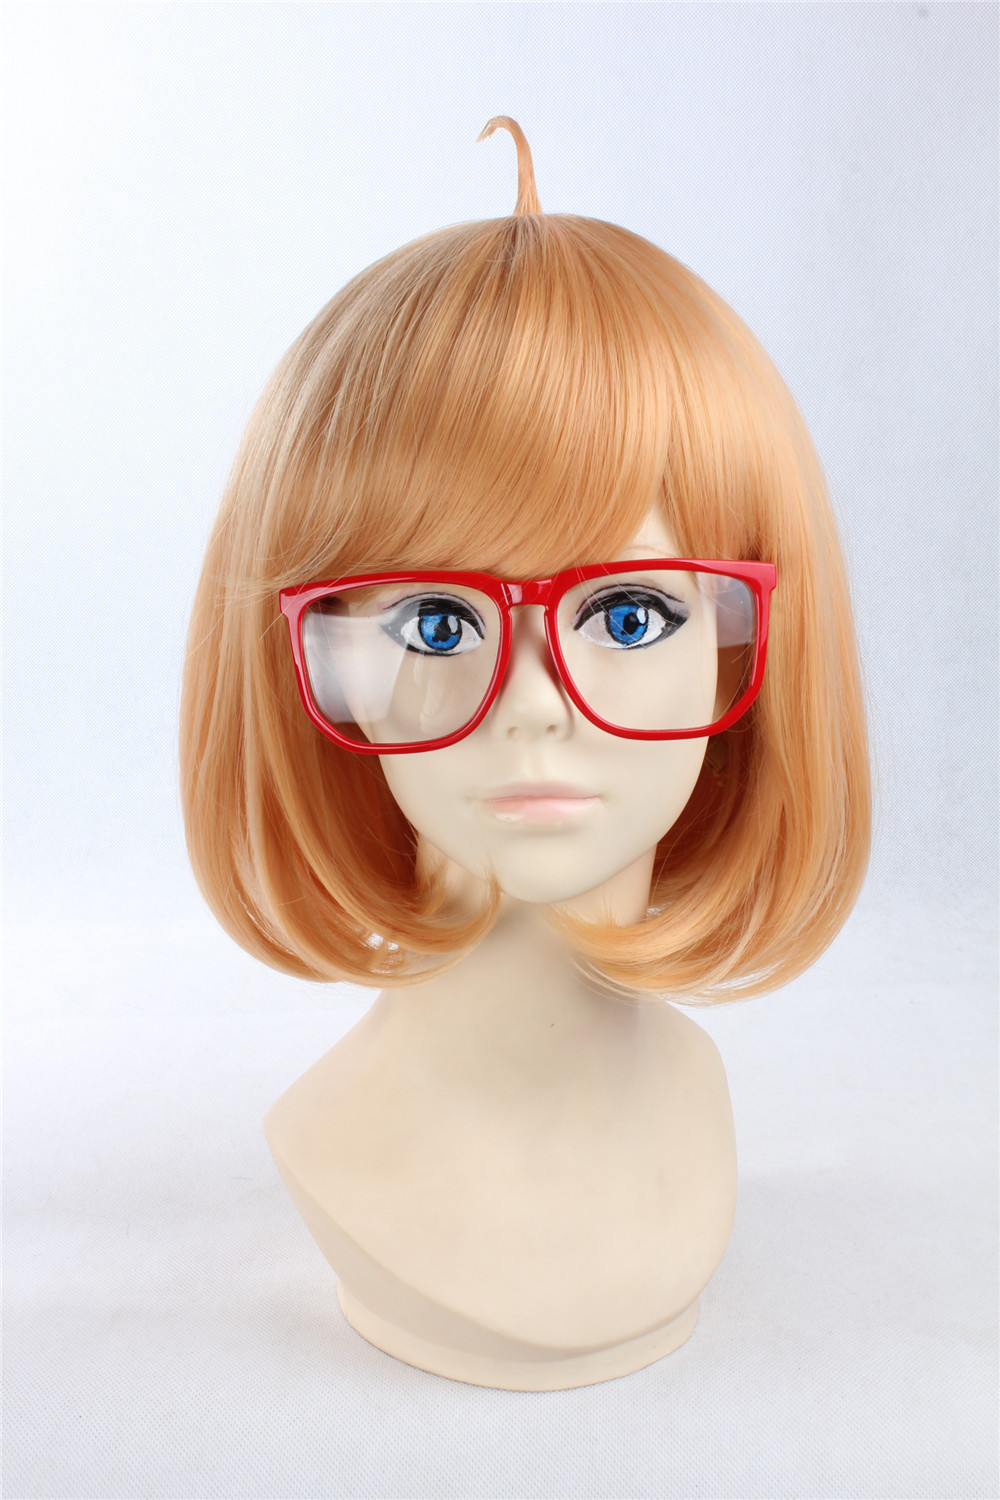 FashiKyokai no Kanata Beyond the Boundary Mirai Kuriyama Cosplay Wig Anime wigs 329A<br><br>Aliexpress